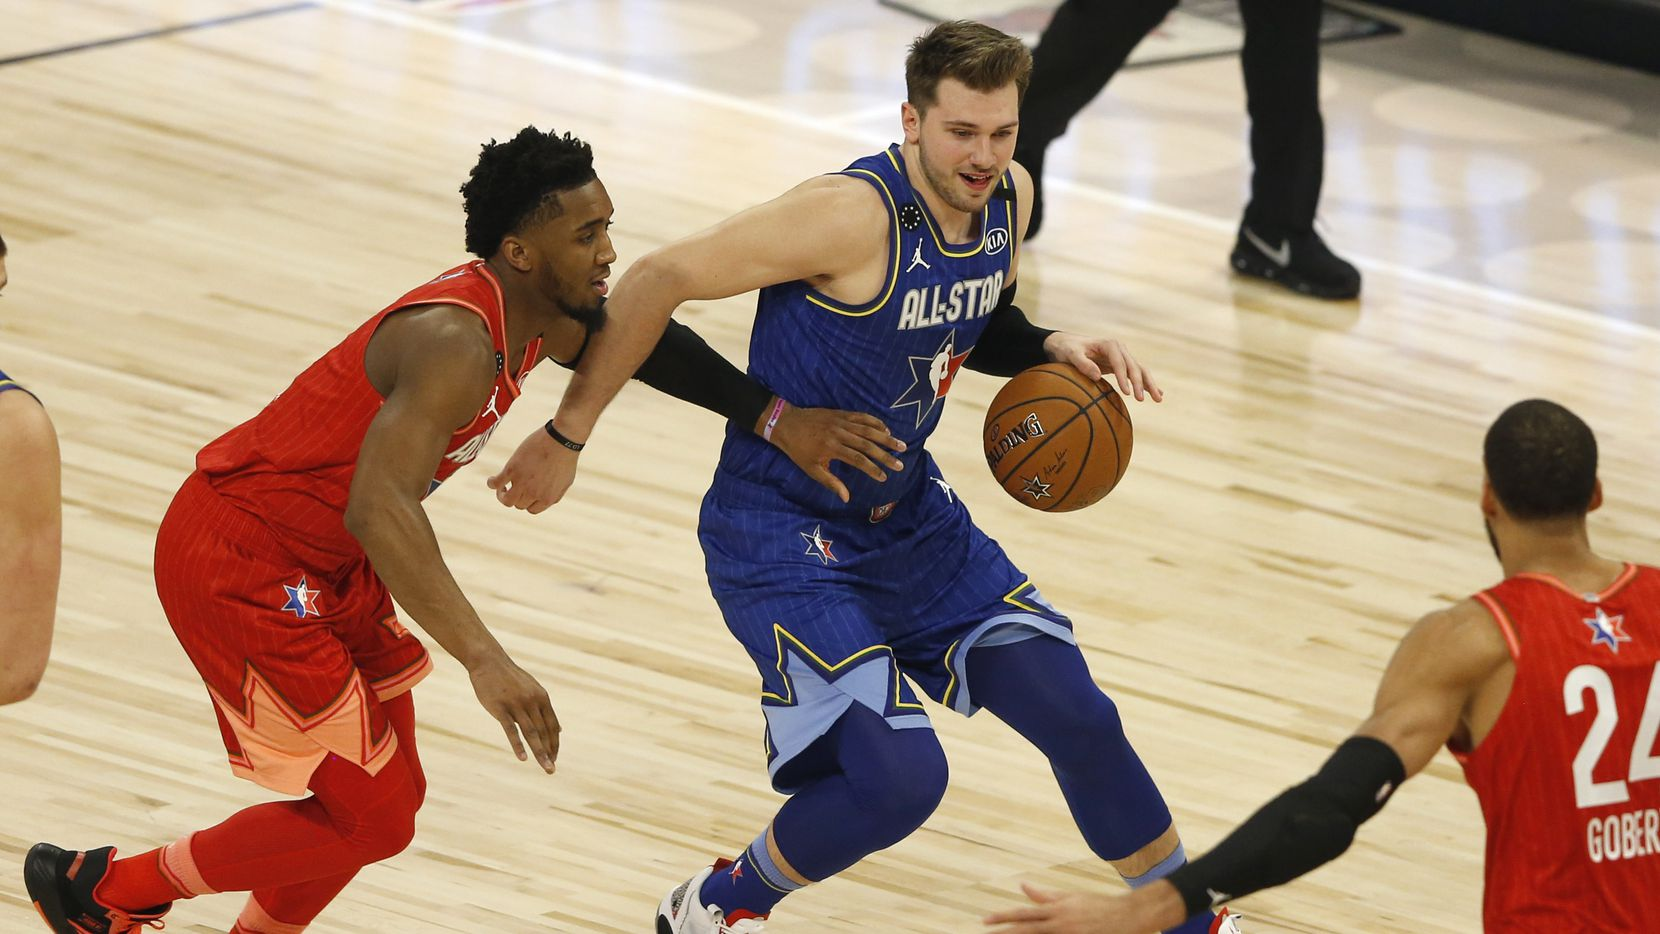 Team LeBron's Luka Doncic (2) dribbles past Team Giannis's Donovan Mitchell (24) toward Rudy Gobert (24) during the first half of play in the NBA All-Star 2020 game at United Center in Chicago on Sunday, February 16, 2020.